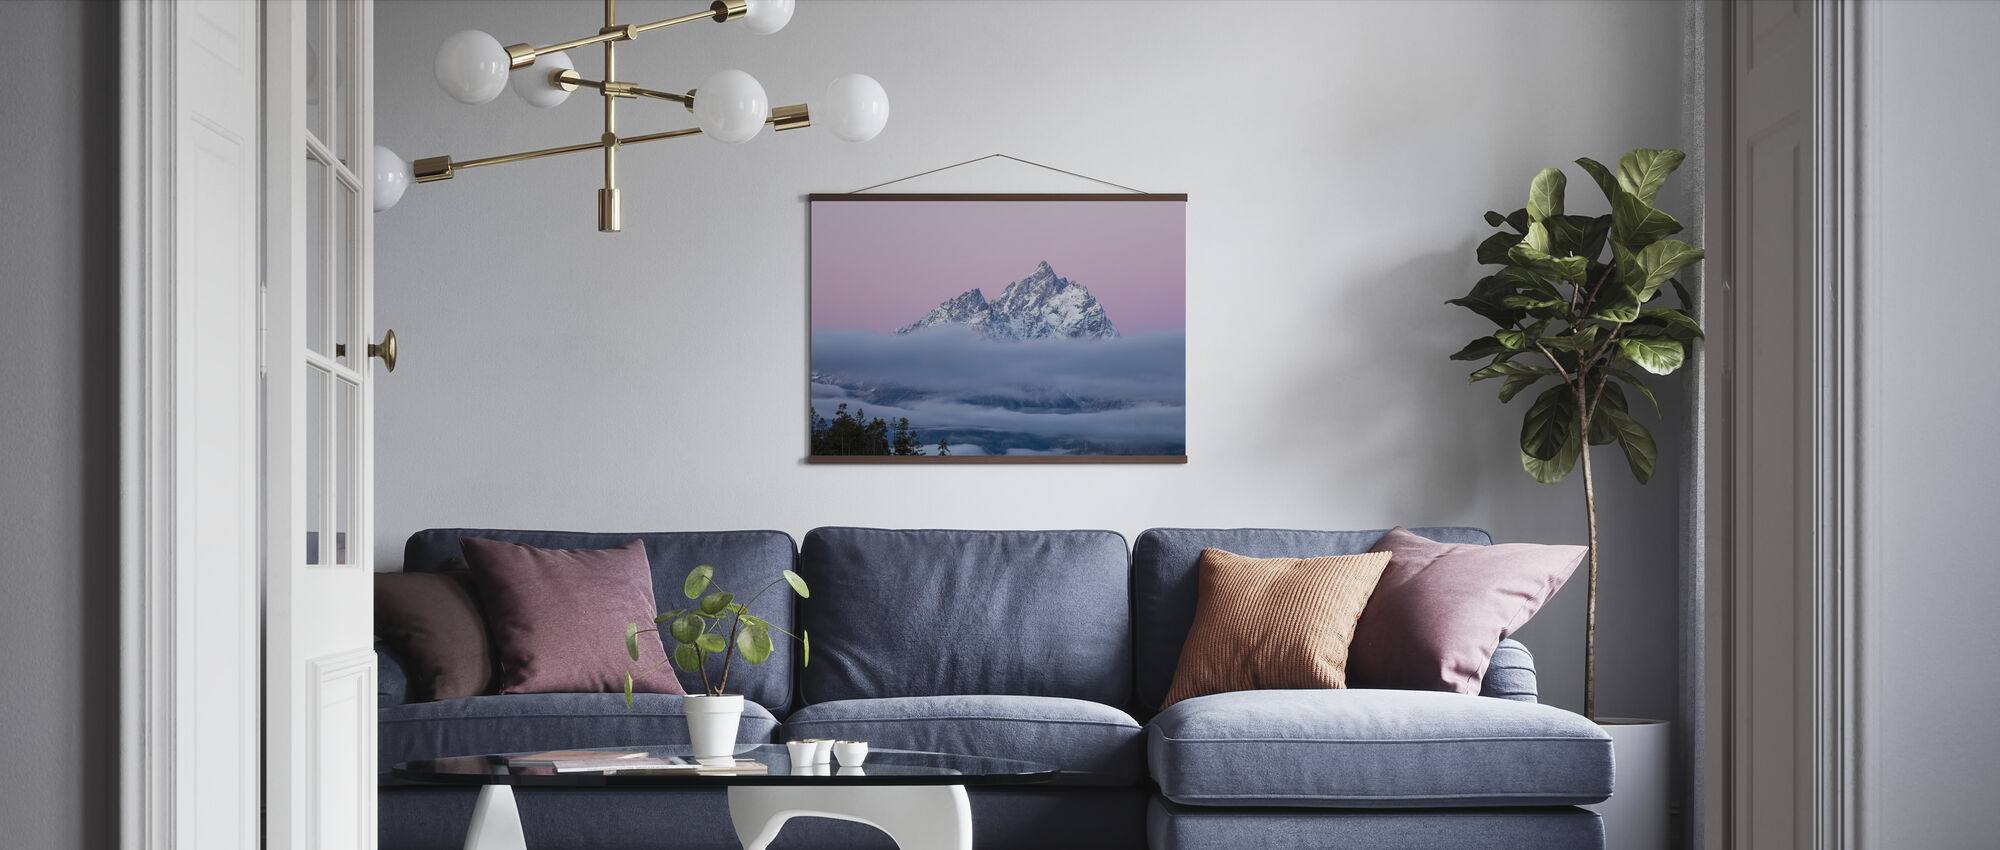 Wrapped in Fog - Poster - Living Room